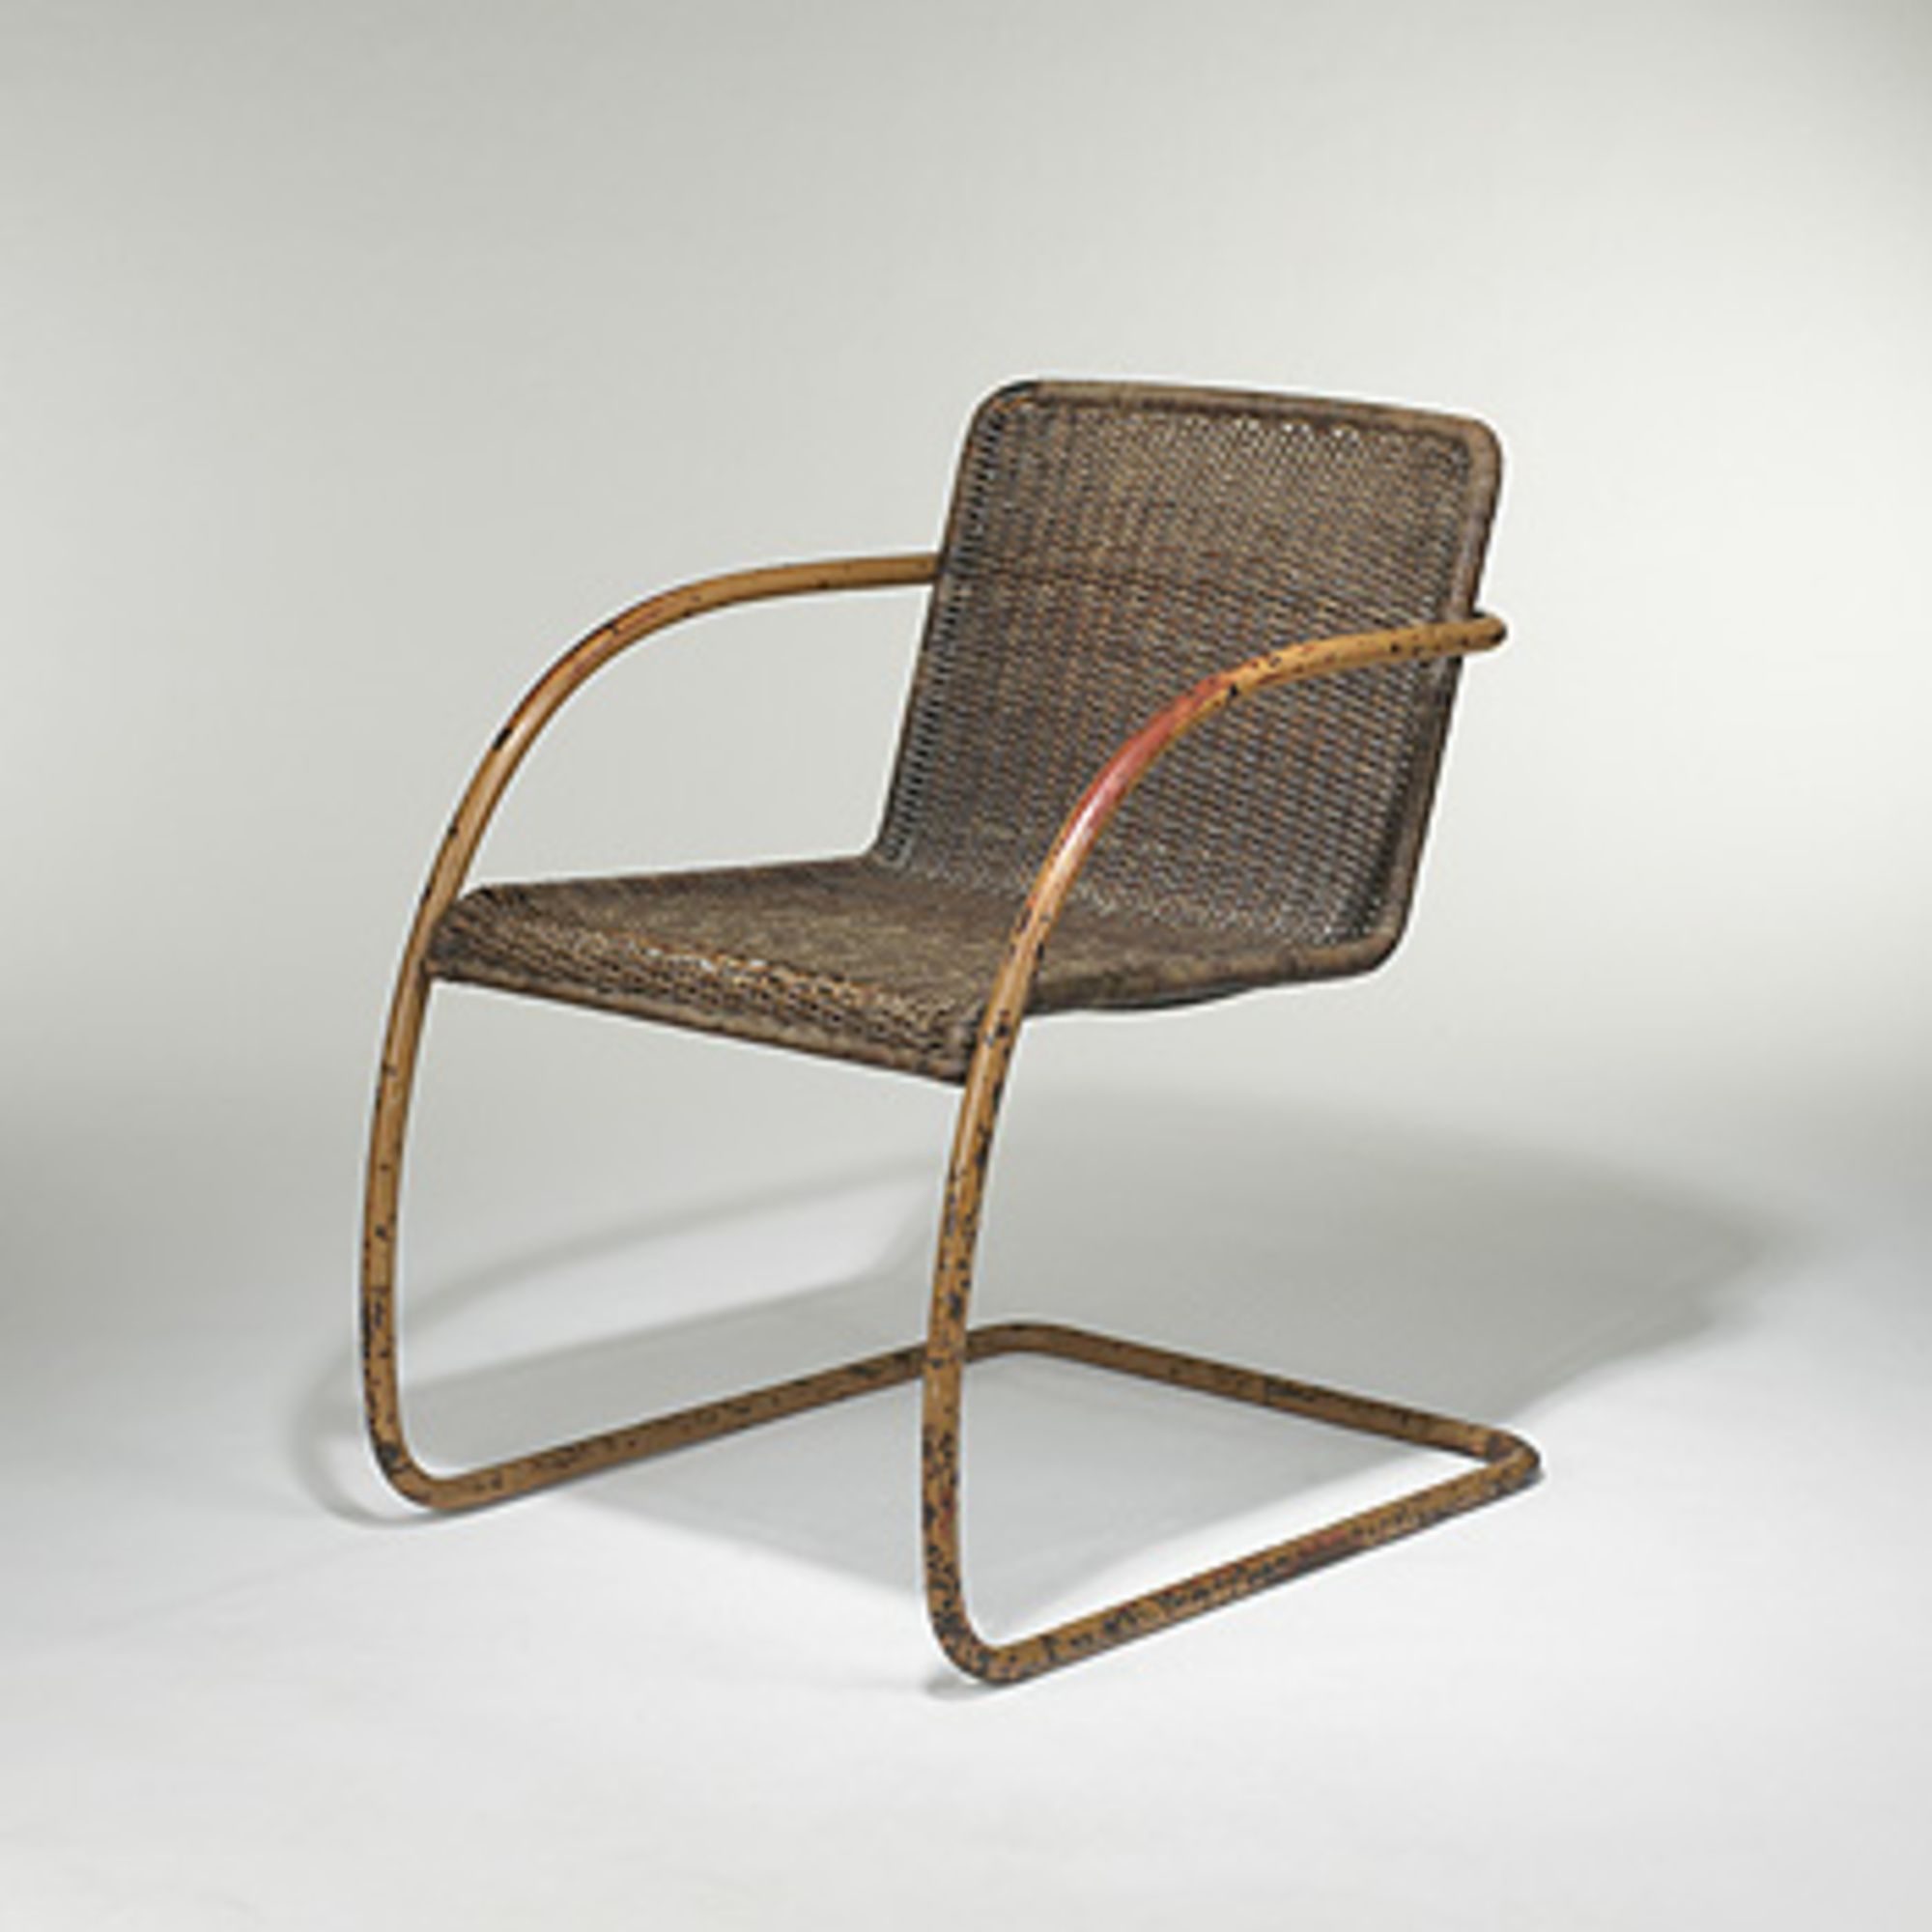 Ludwig Mies Van Der Rohe And Lilly Reich cantilever chair